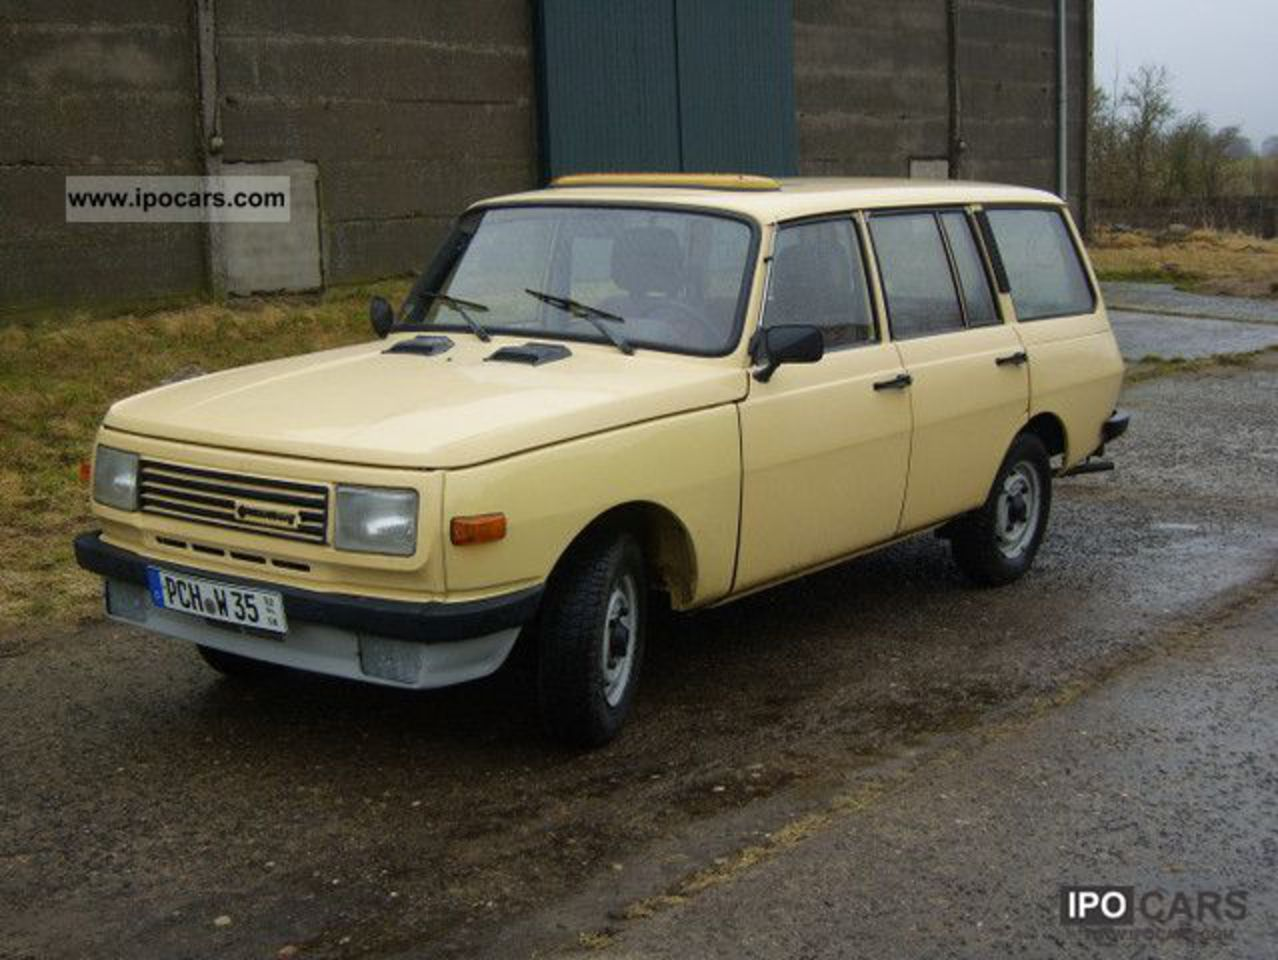 1986 Wartburg 353 - Car Photo and Specs